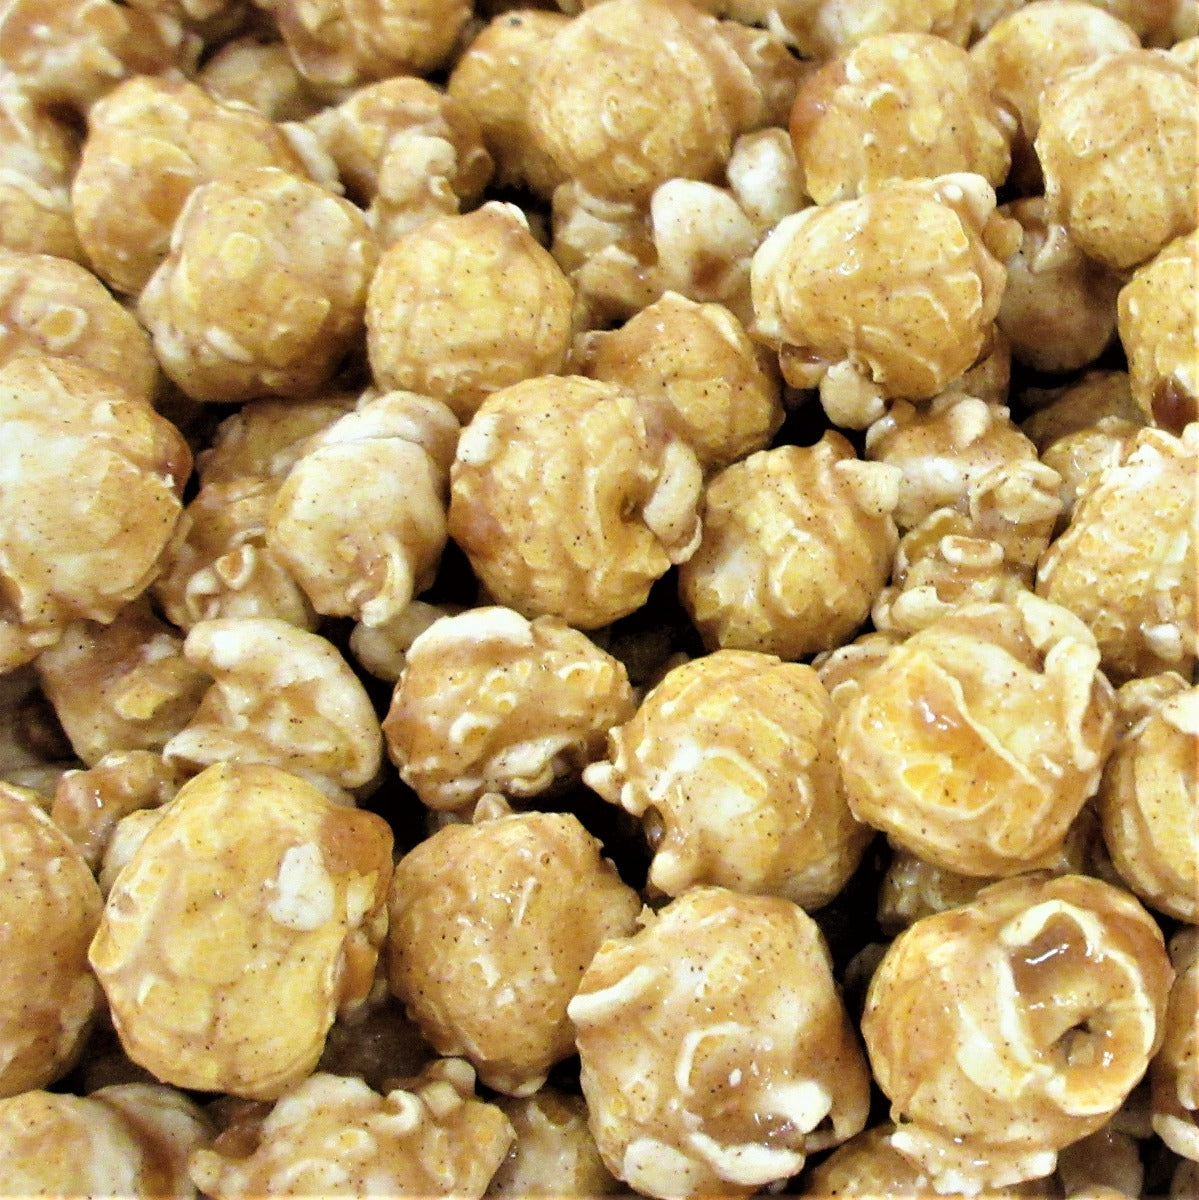 Caramel Popcorn - Its Delish